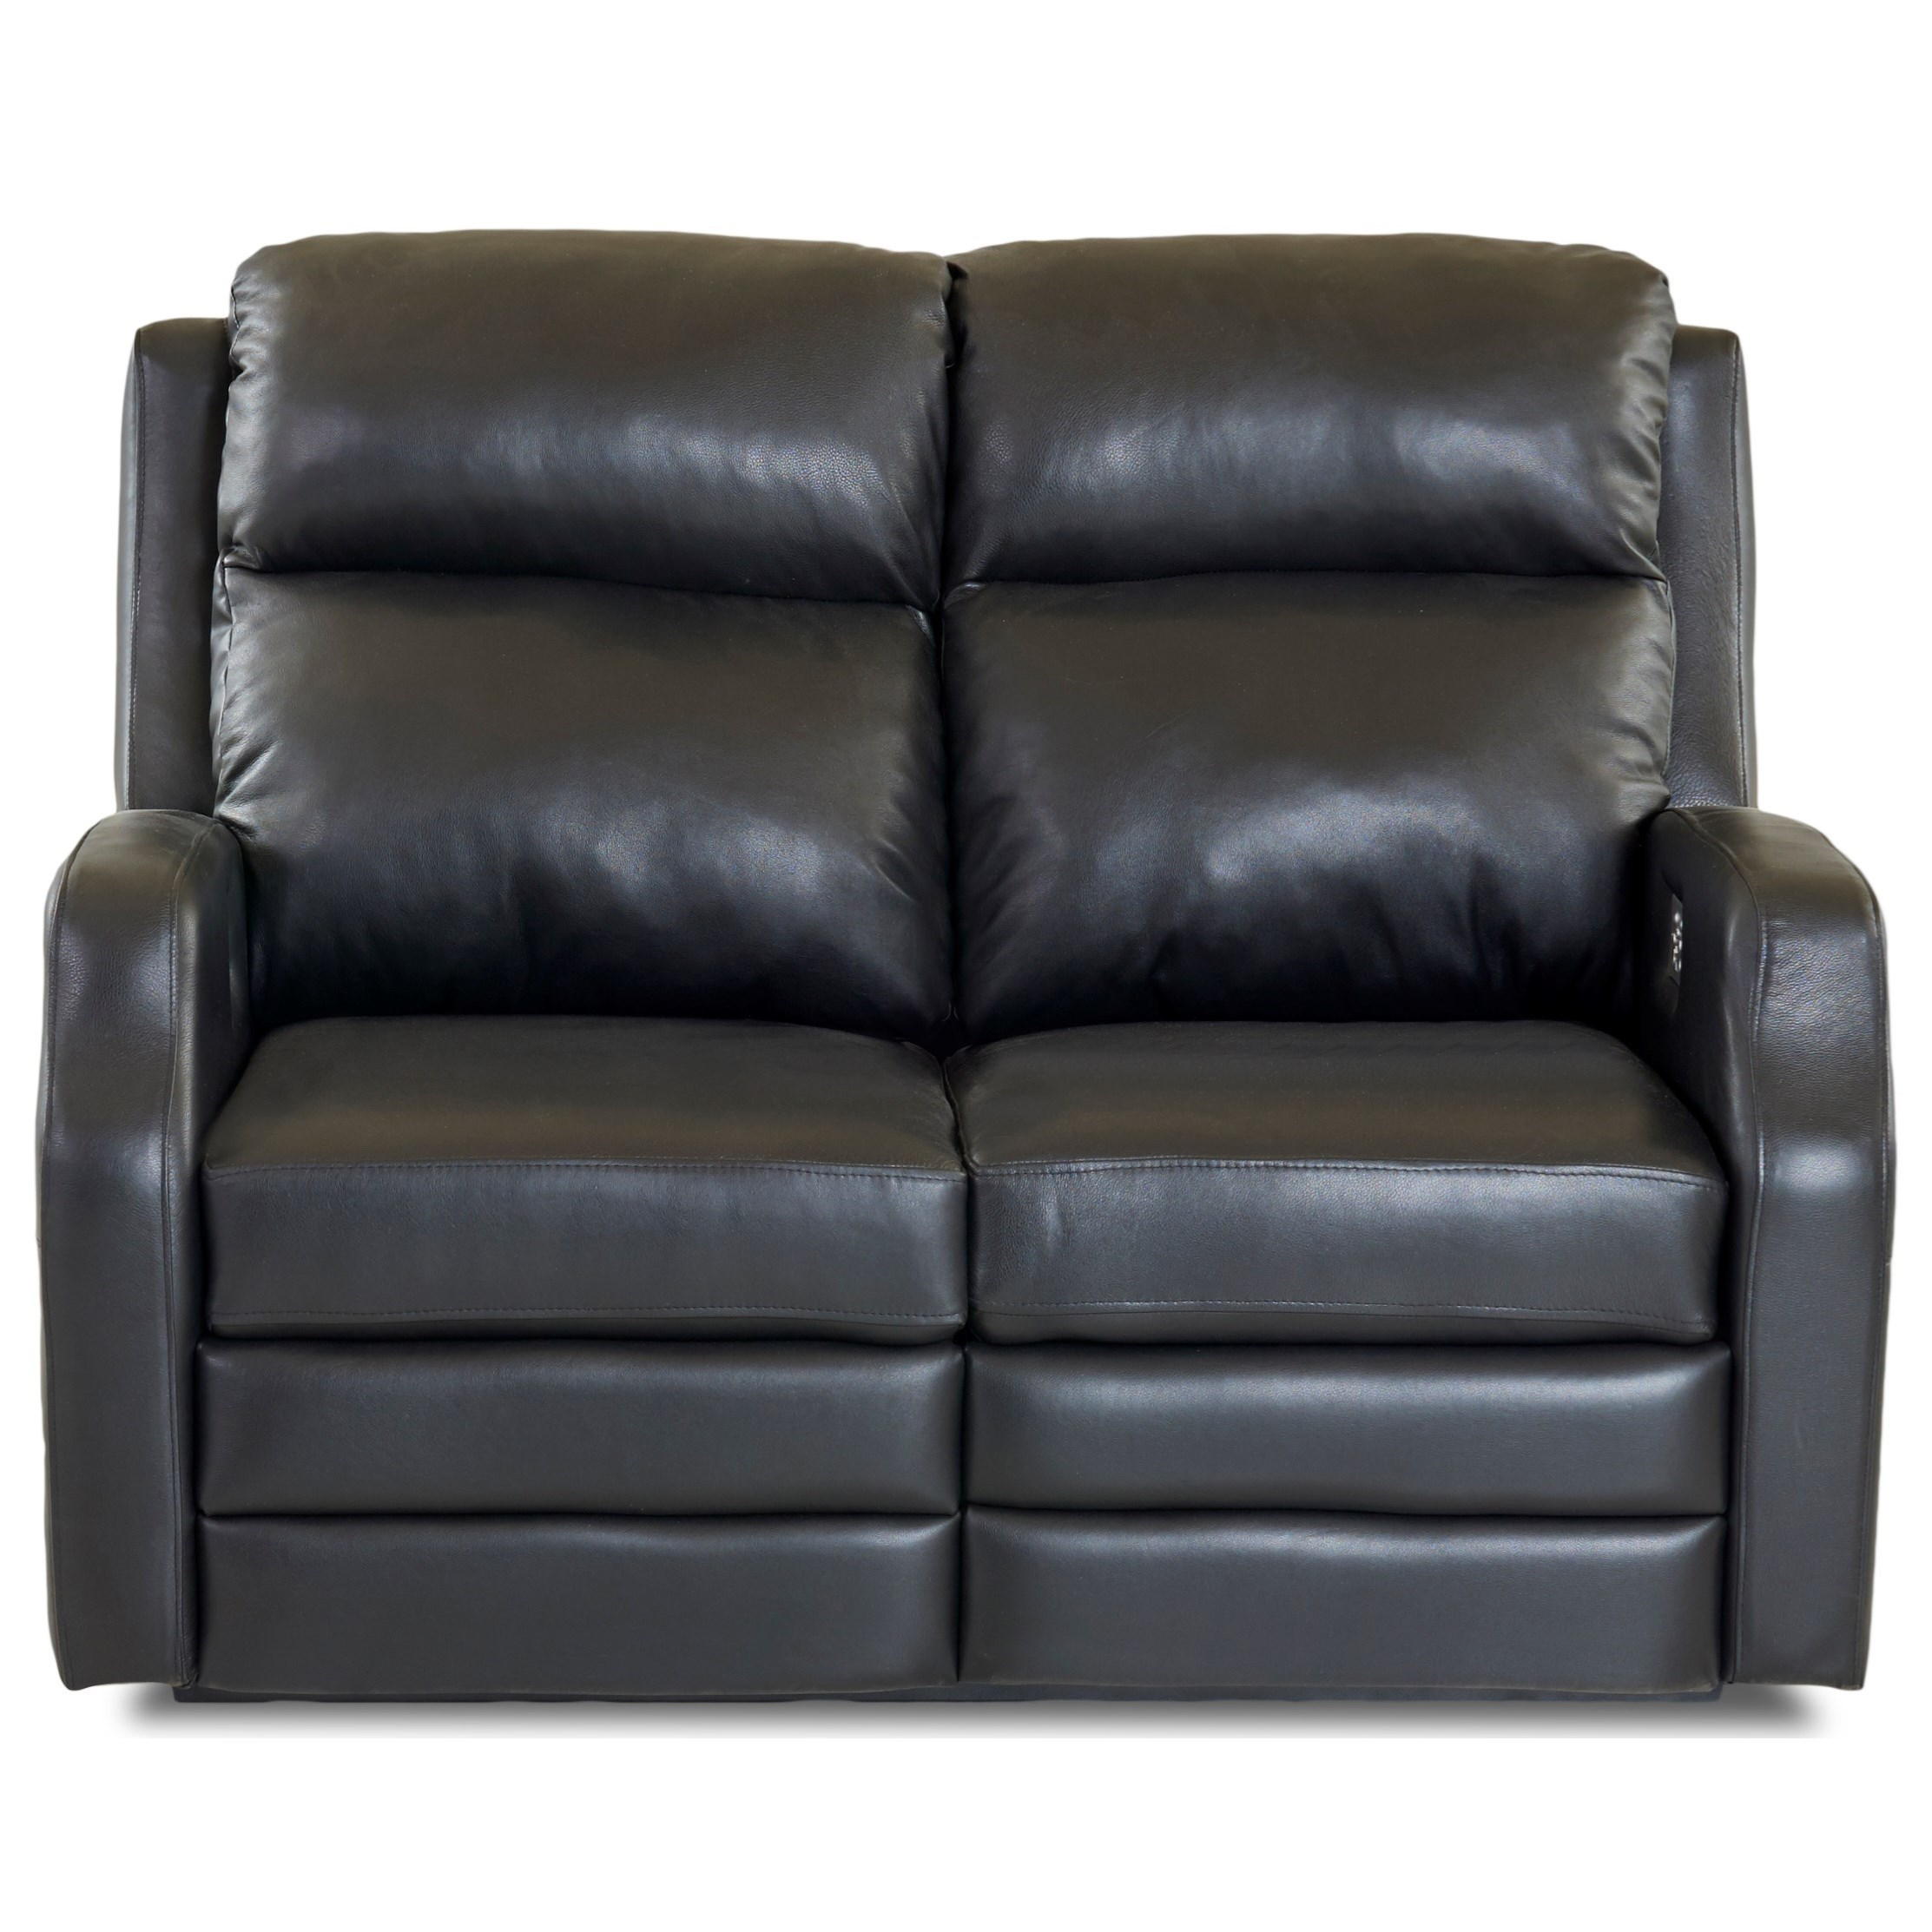 Power Reclining Loveseat with USB Charging Ports and Power Headrests / Lumbar